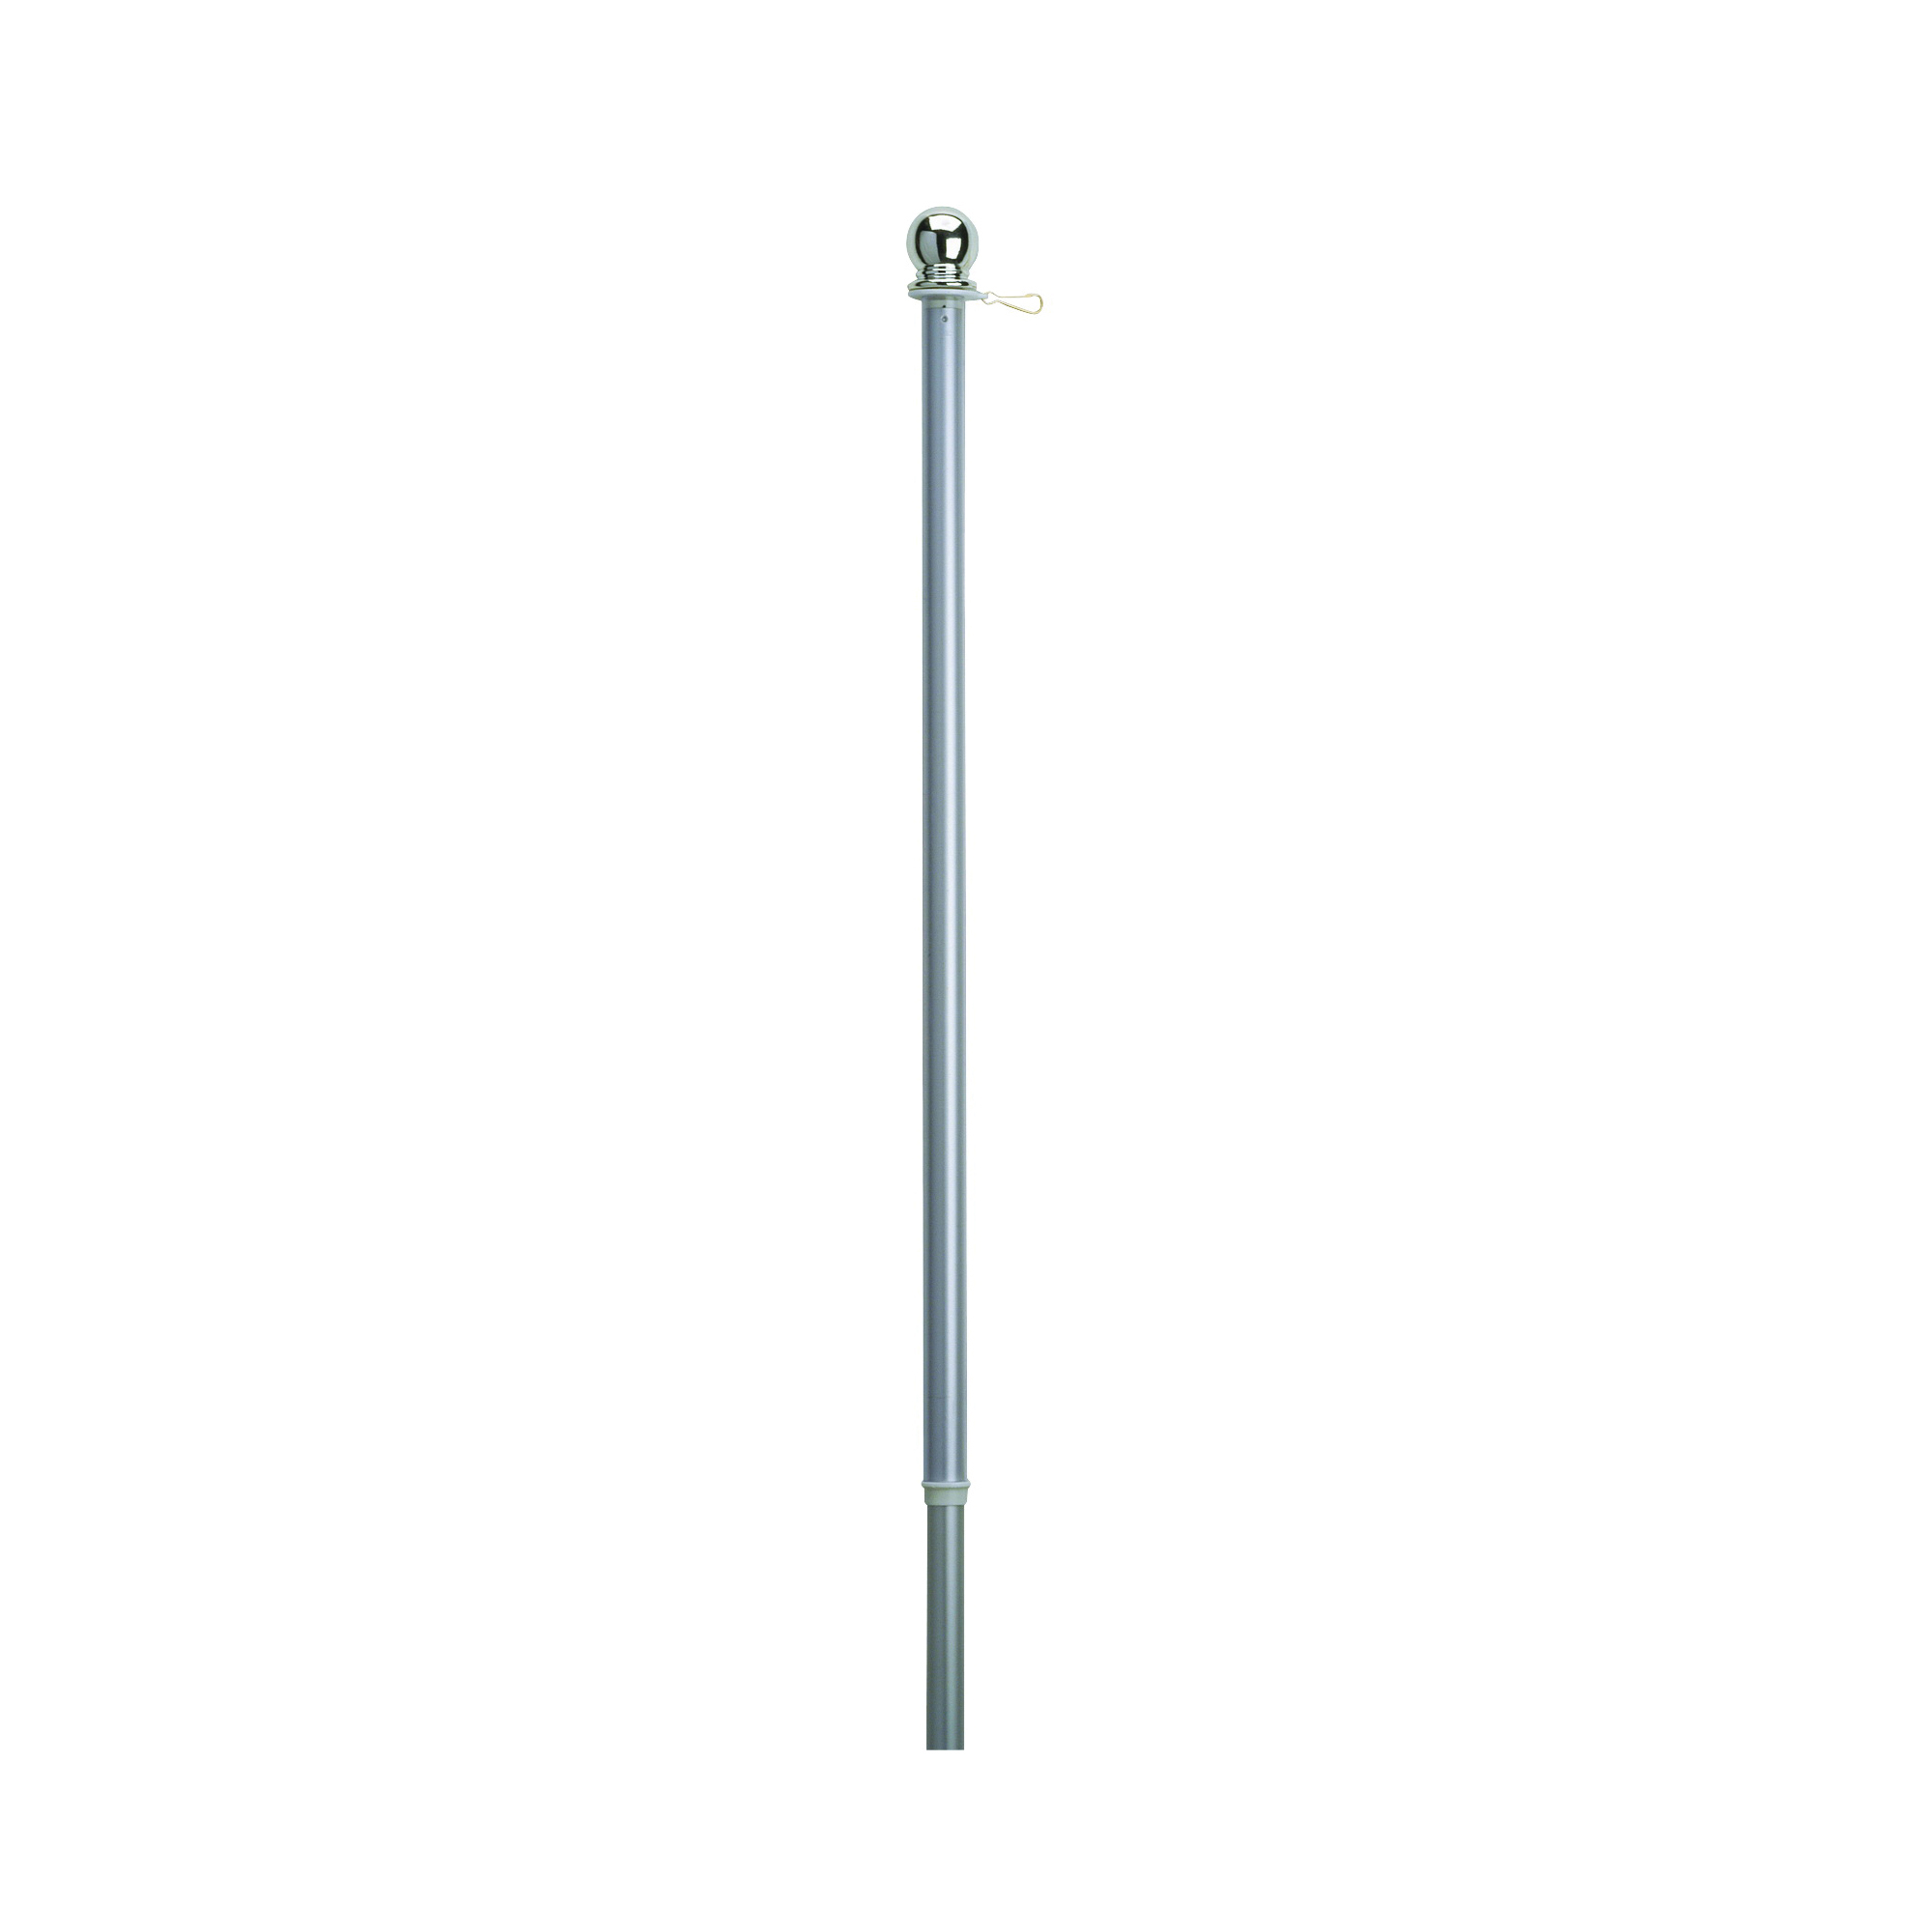 Picture of Valley Forge 60731 Flag Pole, 1 in Dia, Aluminum